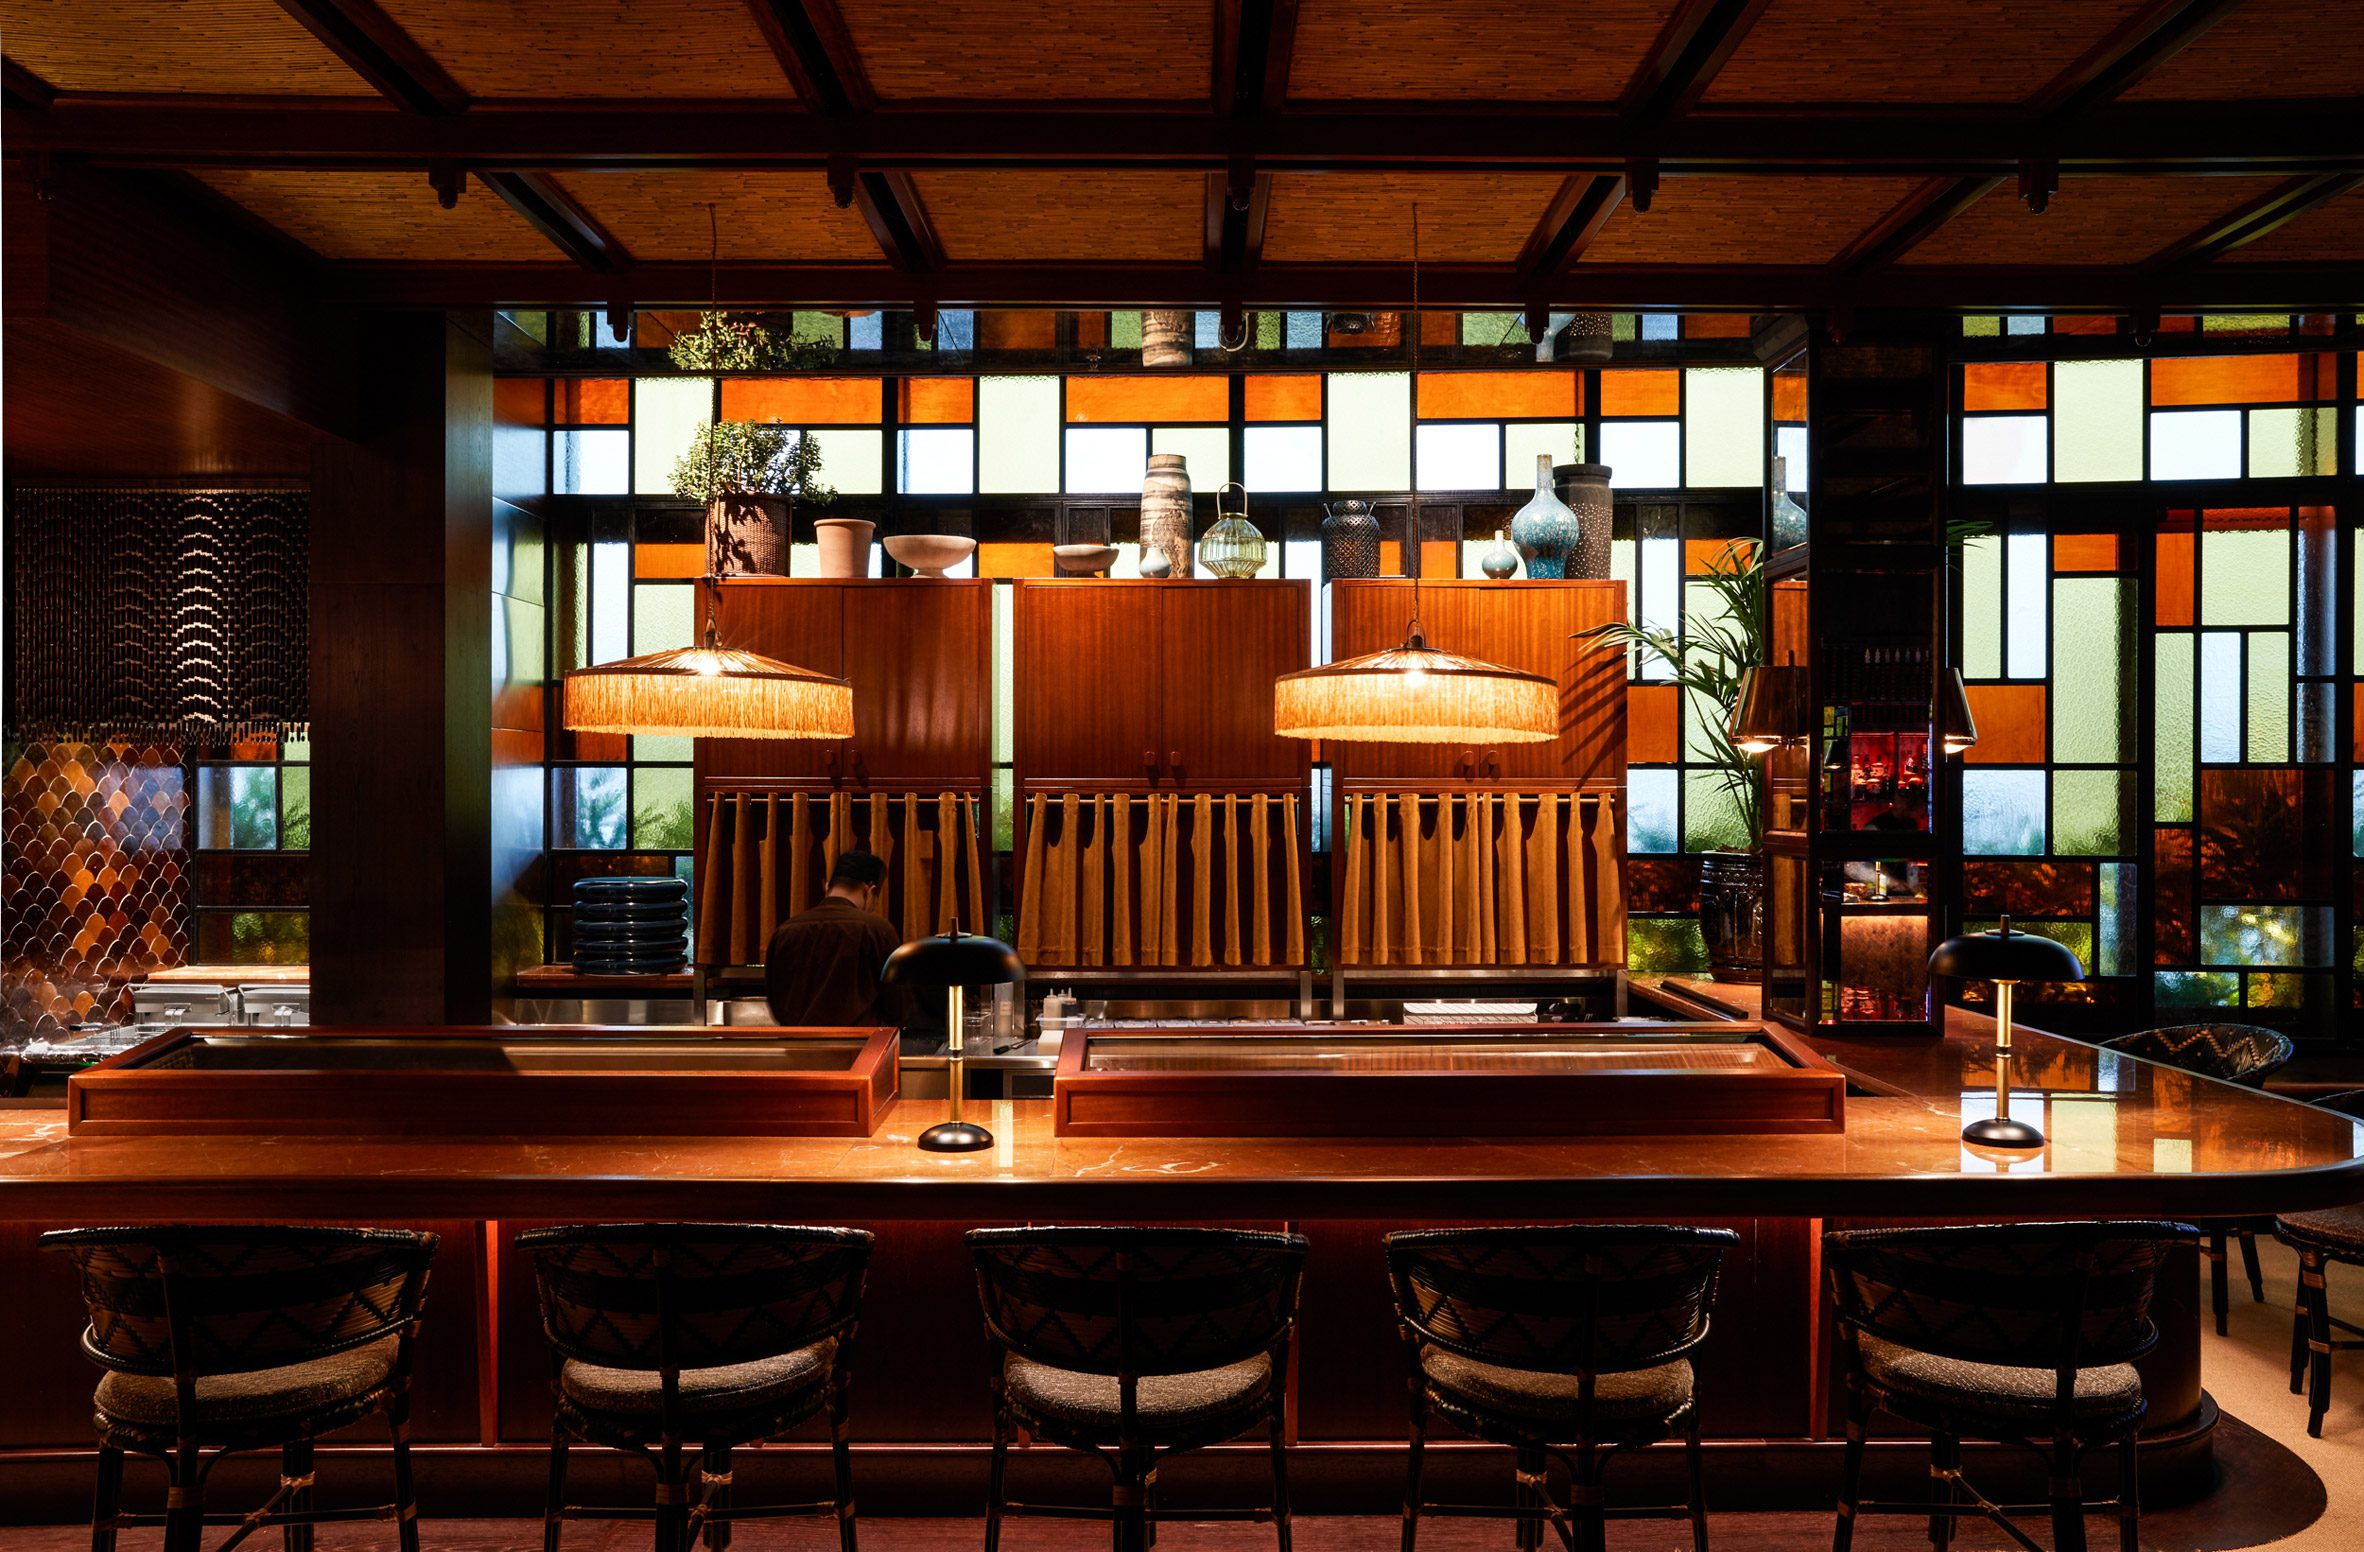 Sushi counter in front of stained glass windows in interior by Pirajean Lees